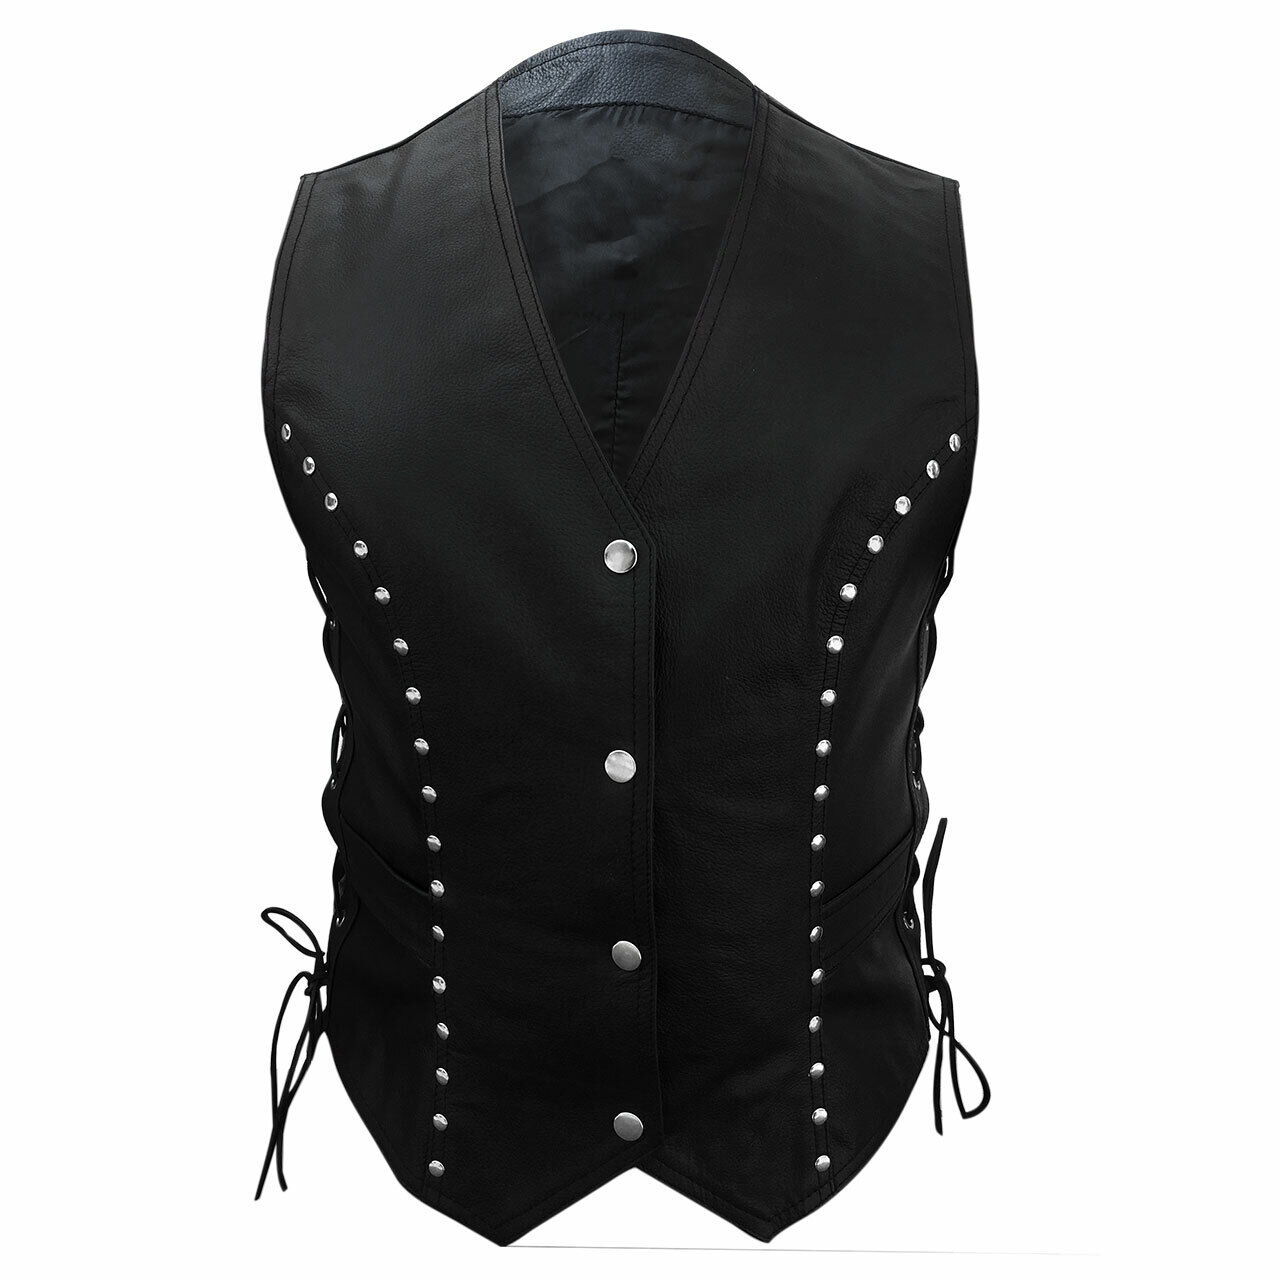 Femme Motards Gilet Authentique Cuir black Gilet